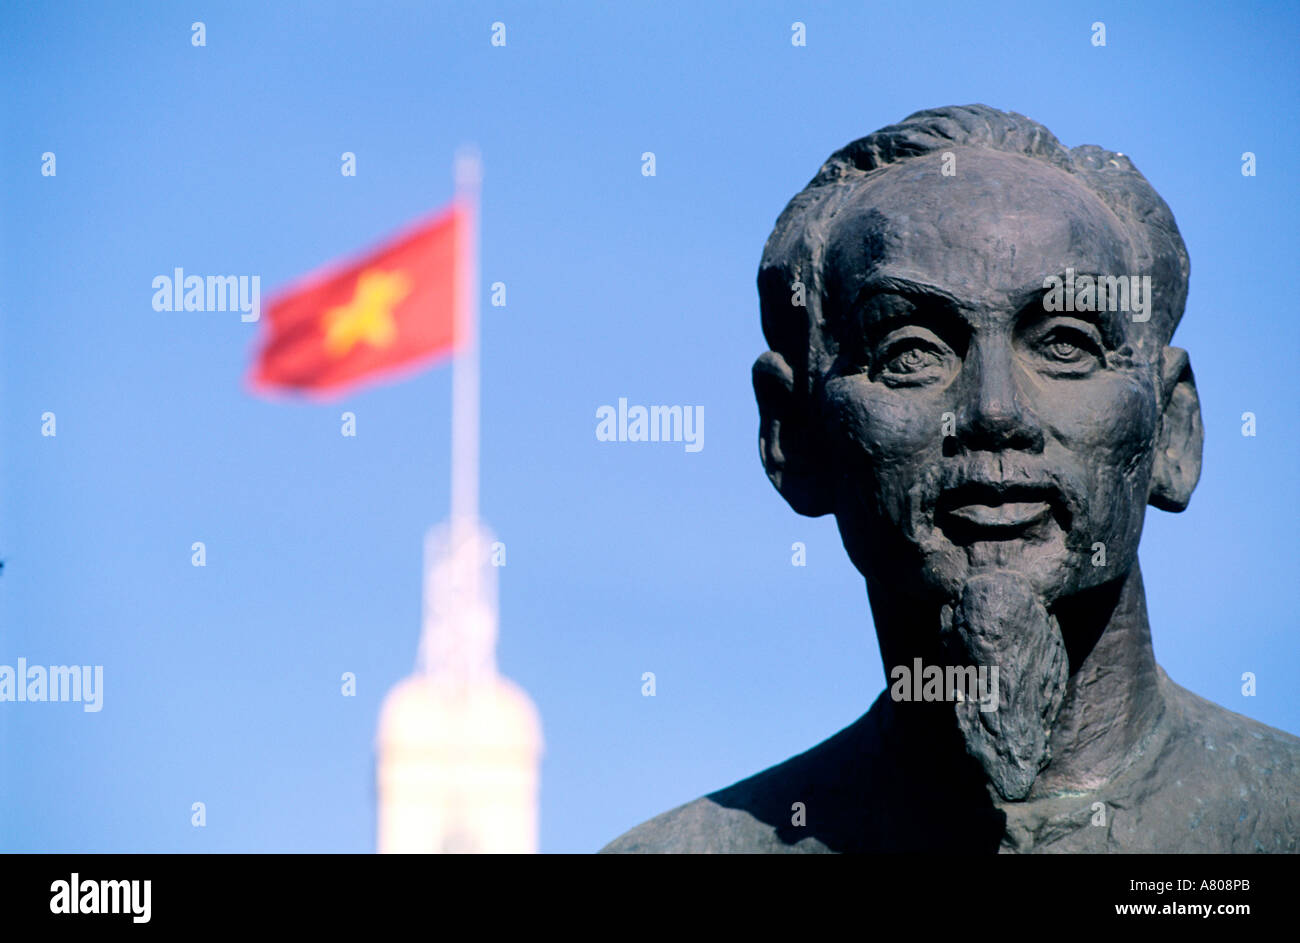 Stock Photo - Vietnam, Saigon (Ho Chi Minh City), Ho-Chi-Minh Statue in front of the town hall - vietnam-saigon-ho-chi-minh-city-ho-chi-minh-statue-in-front-of-the-A808PB